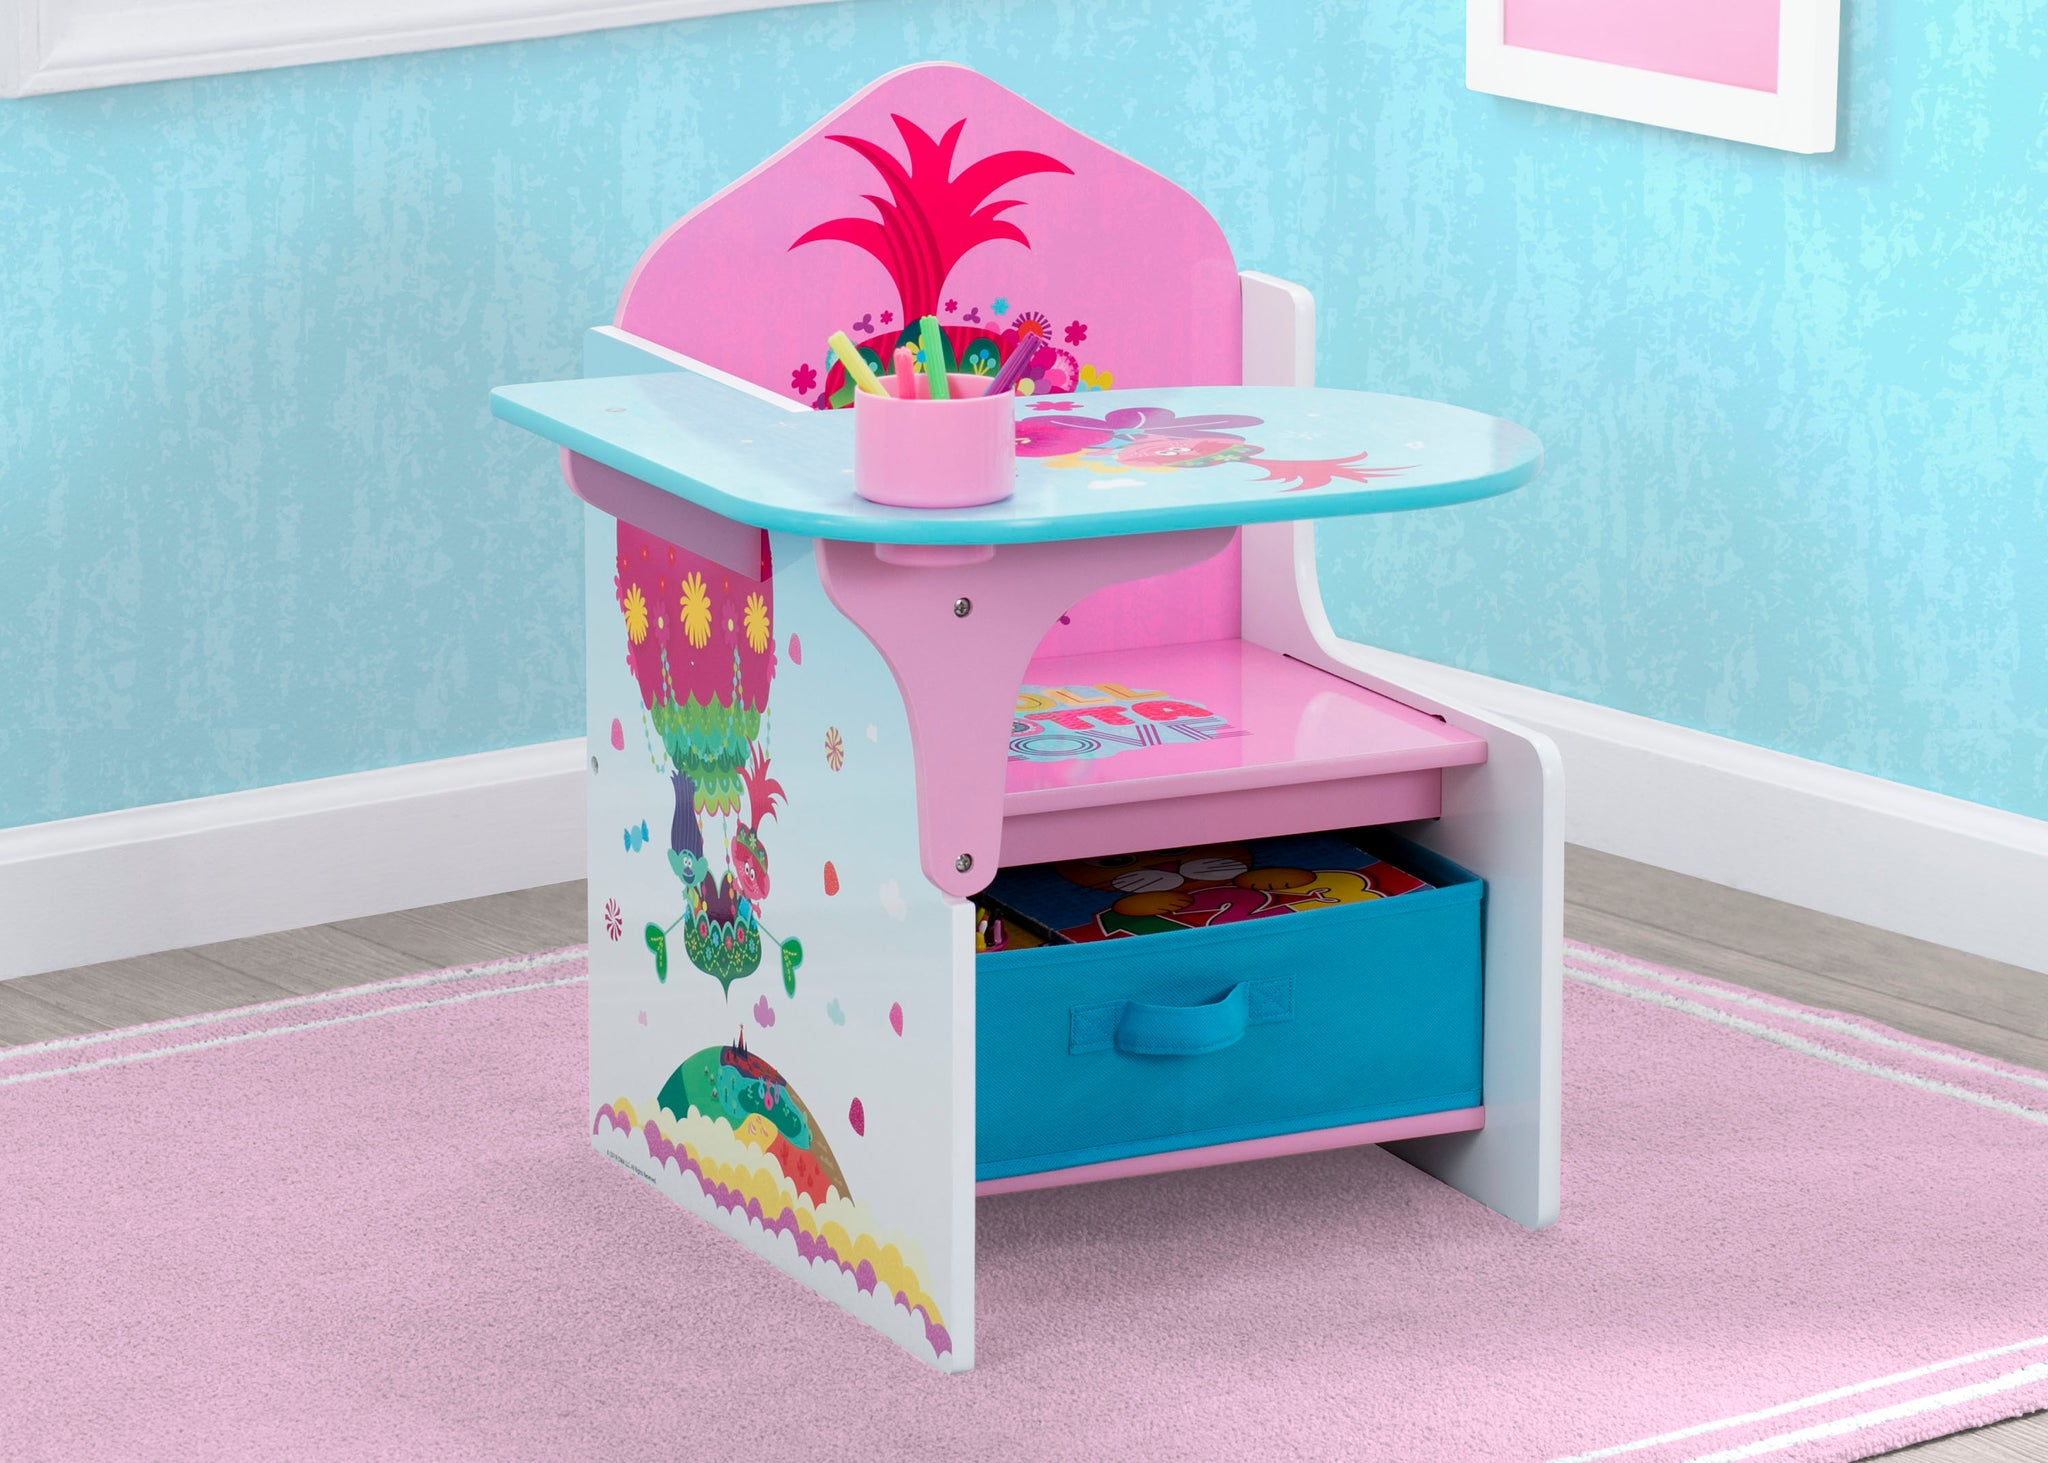 Delta Children Trolls World Tour (1177) Chair Desk with Storage Bin, Hangtag View